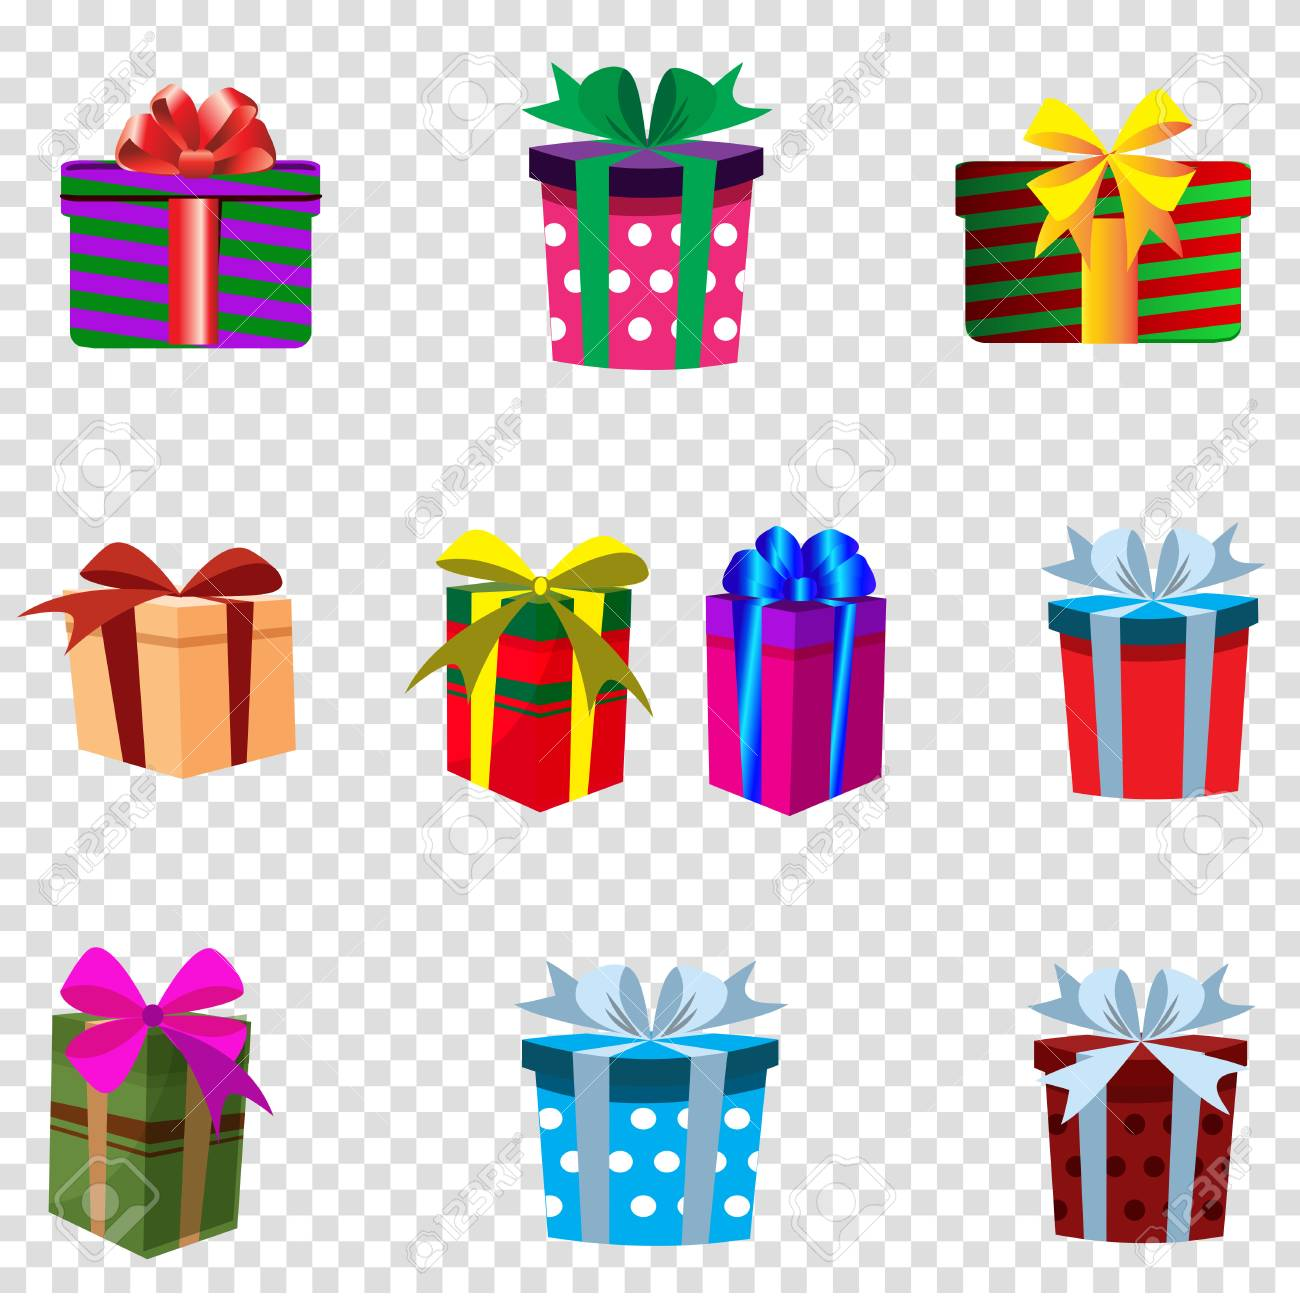 Vector set of colourful gift boxes isolated on transparent background.